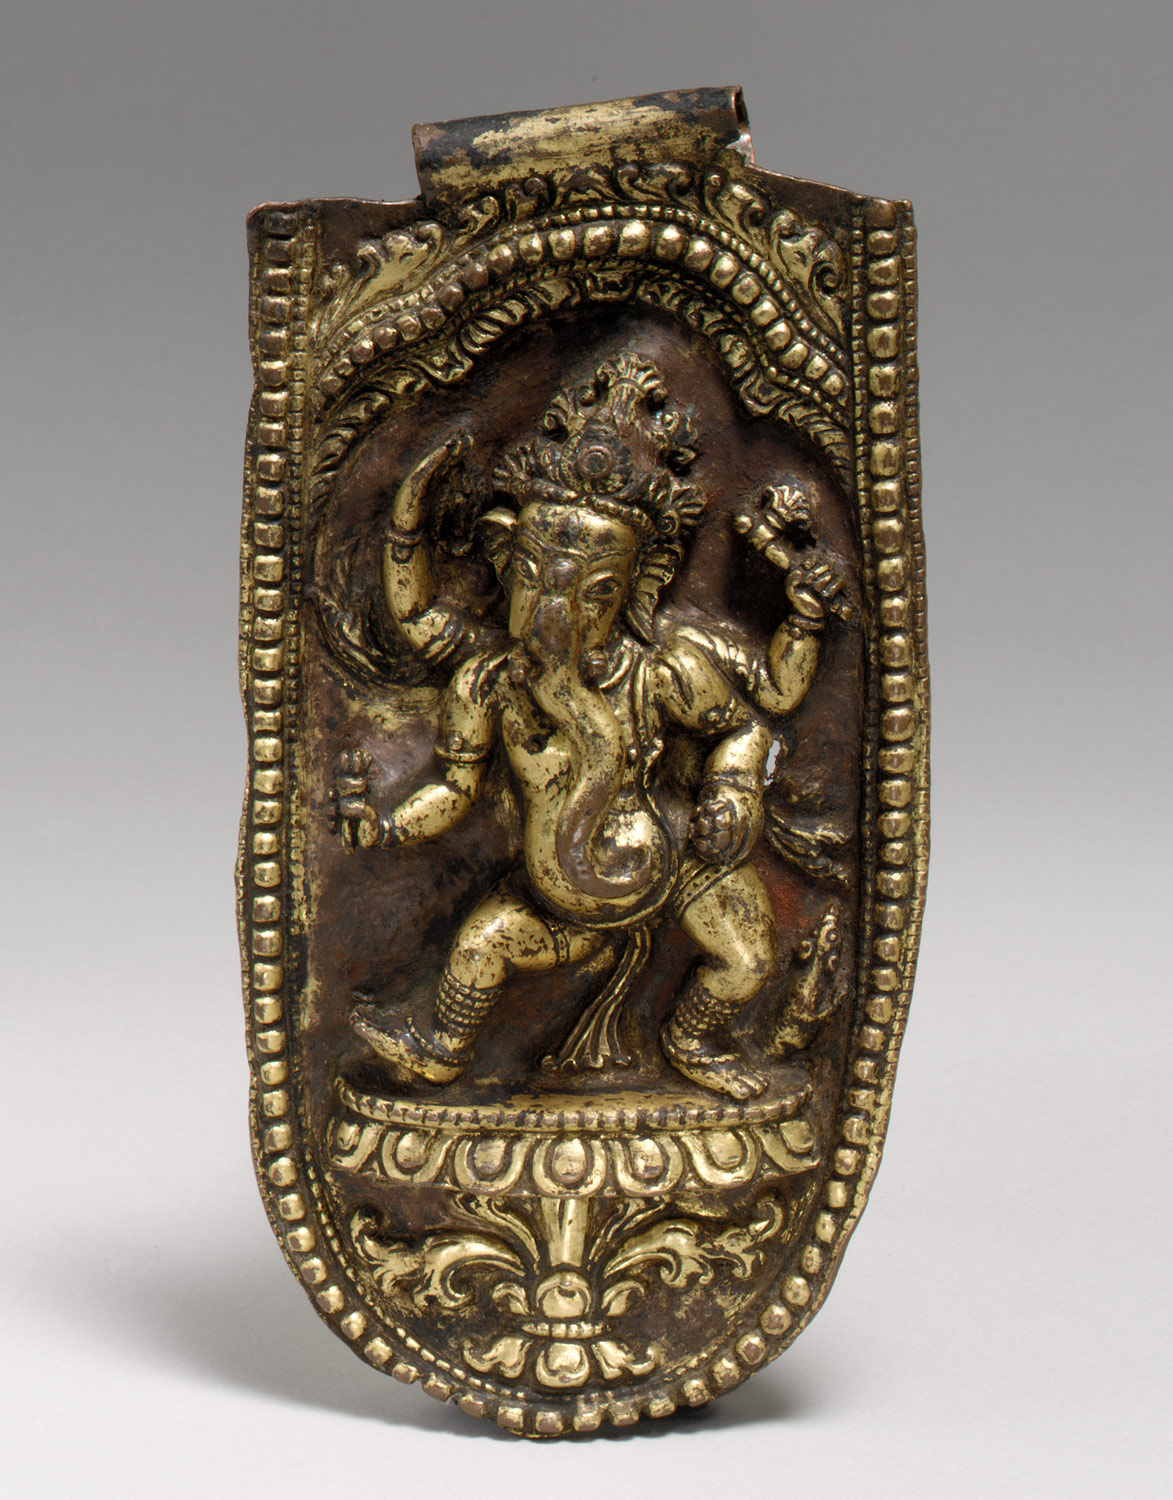 Four-Armed Ganesha Dancing